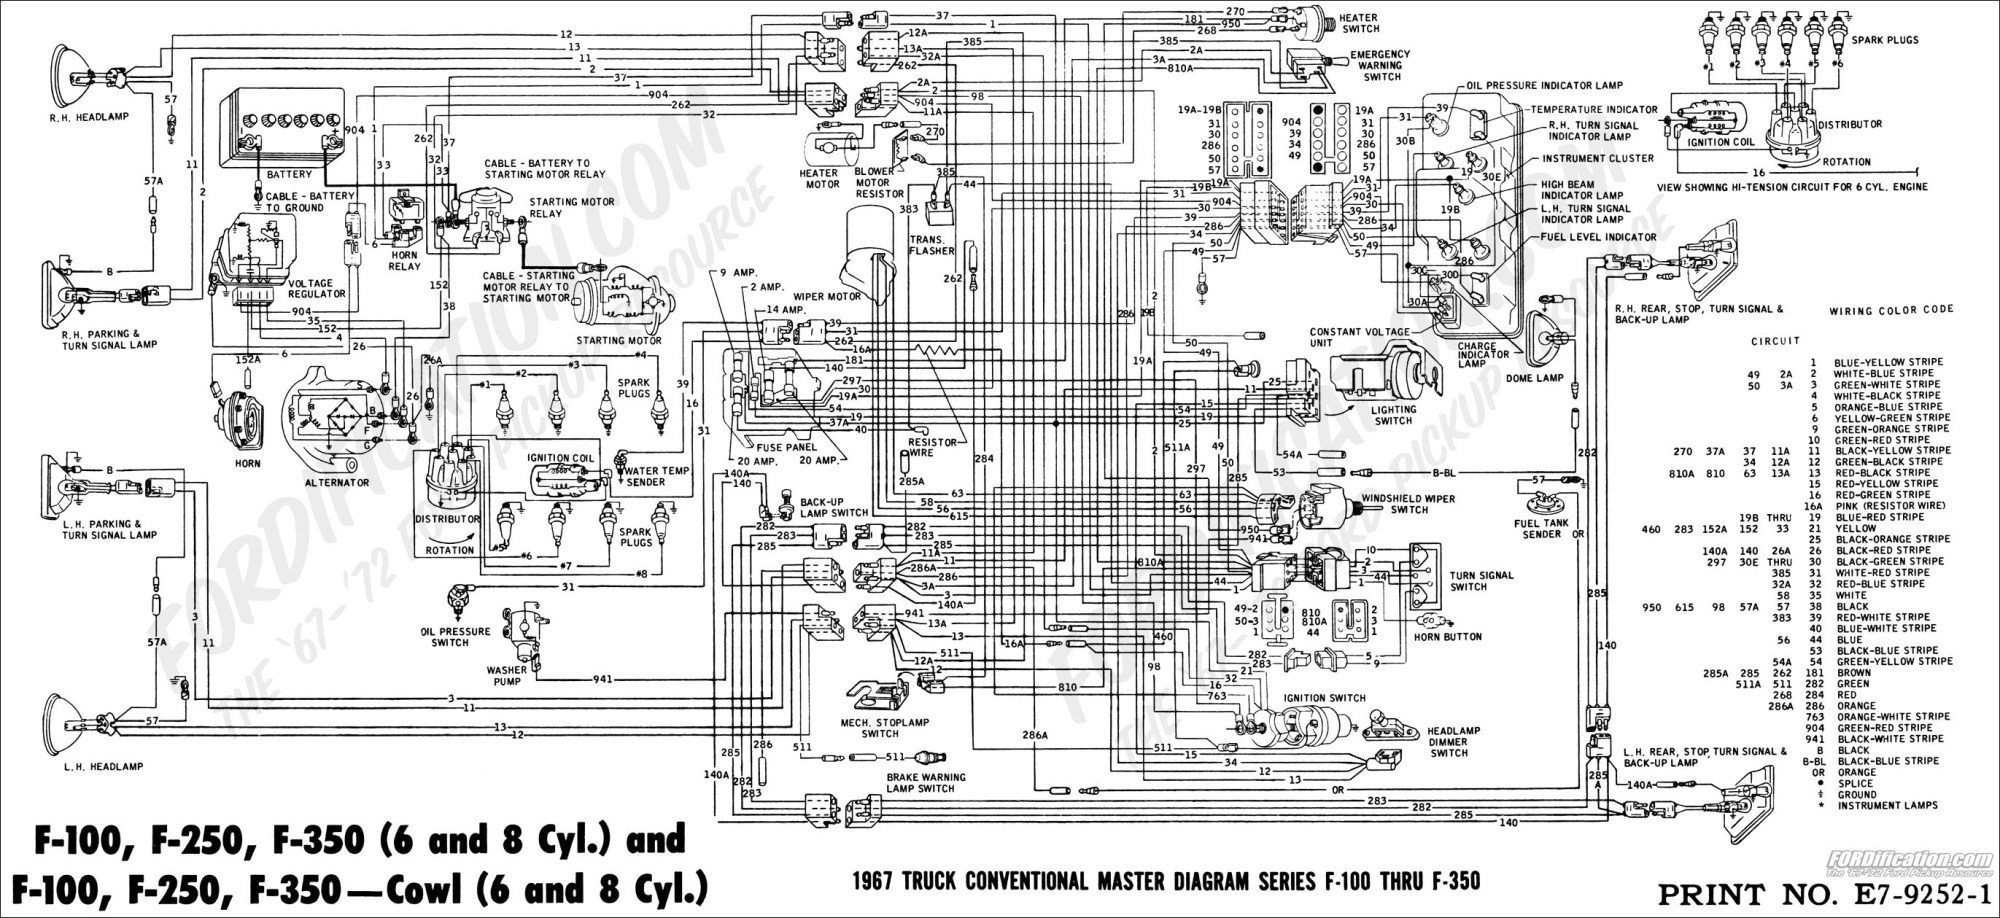 hight resolution of 1983 f150 wiring diagram wiring diagram home 1985 chevrolet suburban wiring diagram 1985 ford f 150 wiring diagram